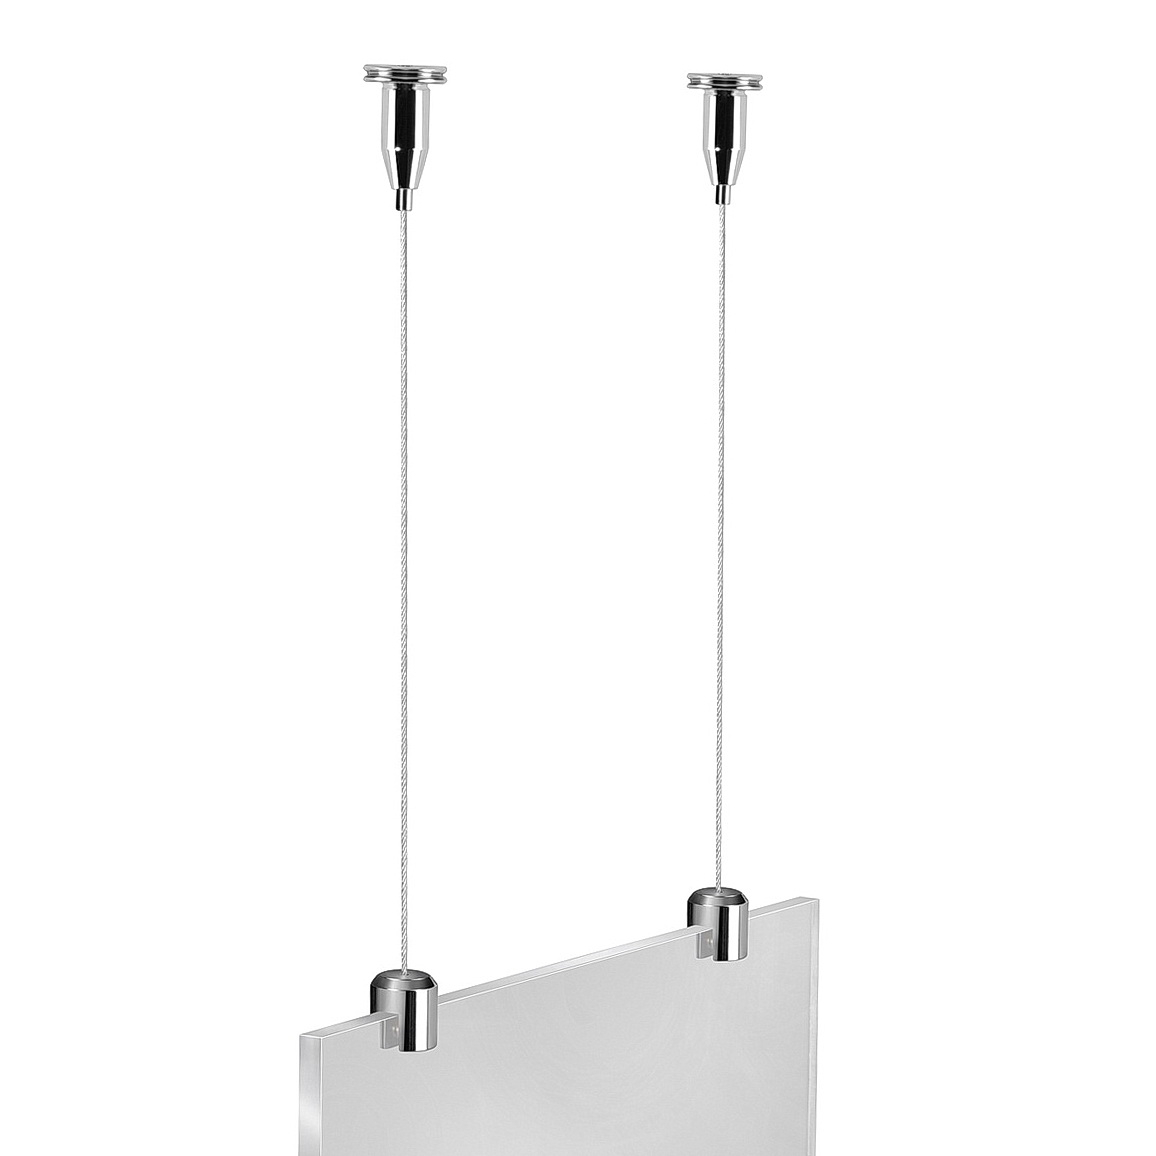 Suspended Cable System Kit (2 full set)